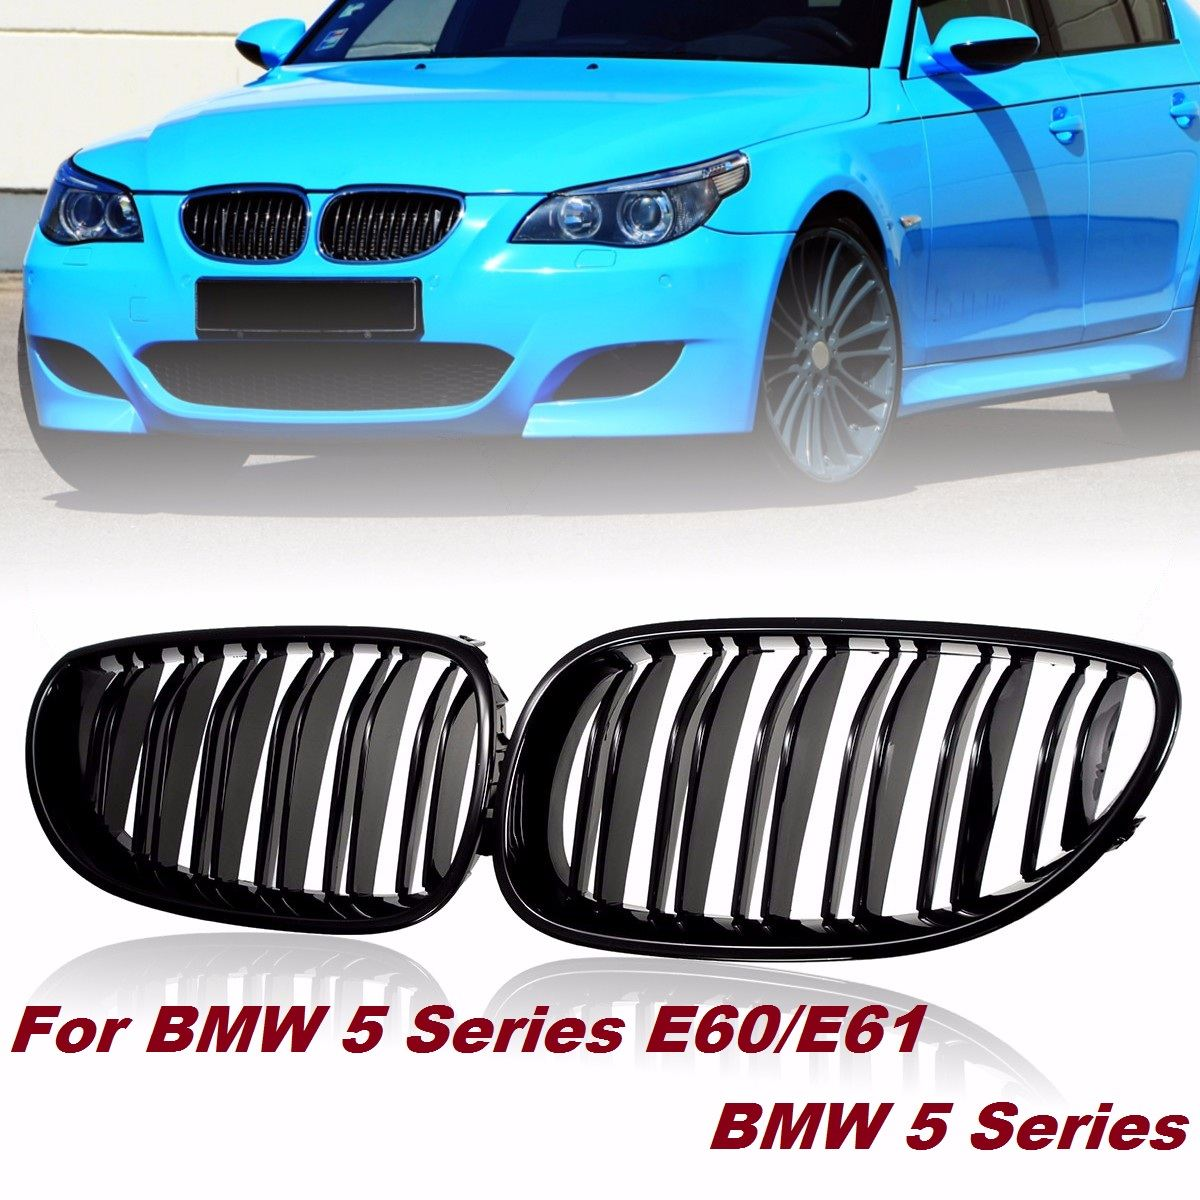 Pair Gloss/Matte Black Car Front Sport Grill Kidney Grilles Grill For BMW 5 Series M5 E60/E61 2003 2004 2005 2006 2007 2008 2009 e60 abs front kidney grille grill for bmw 5 series e60 2004 2009 sedan e61 hatchback 1 slat 2 slat 535i 545i